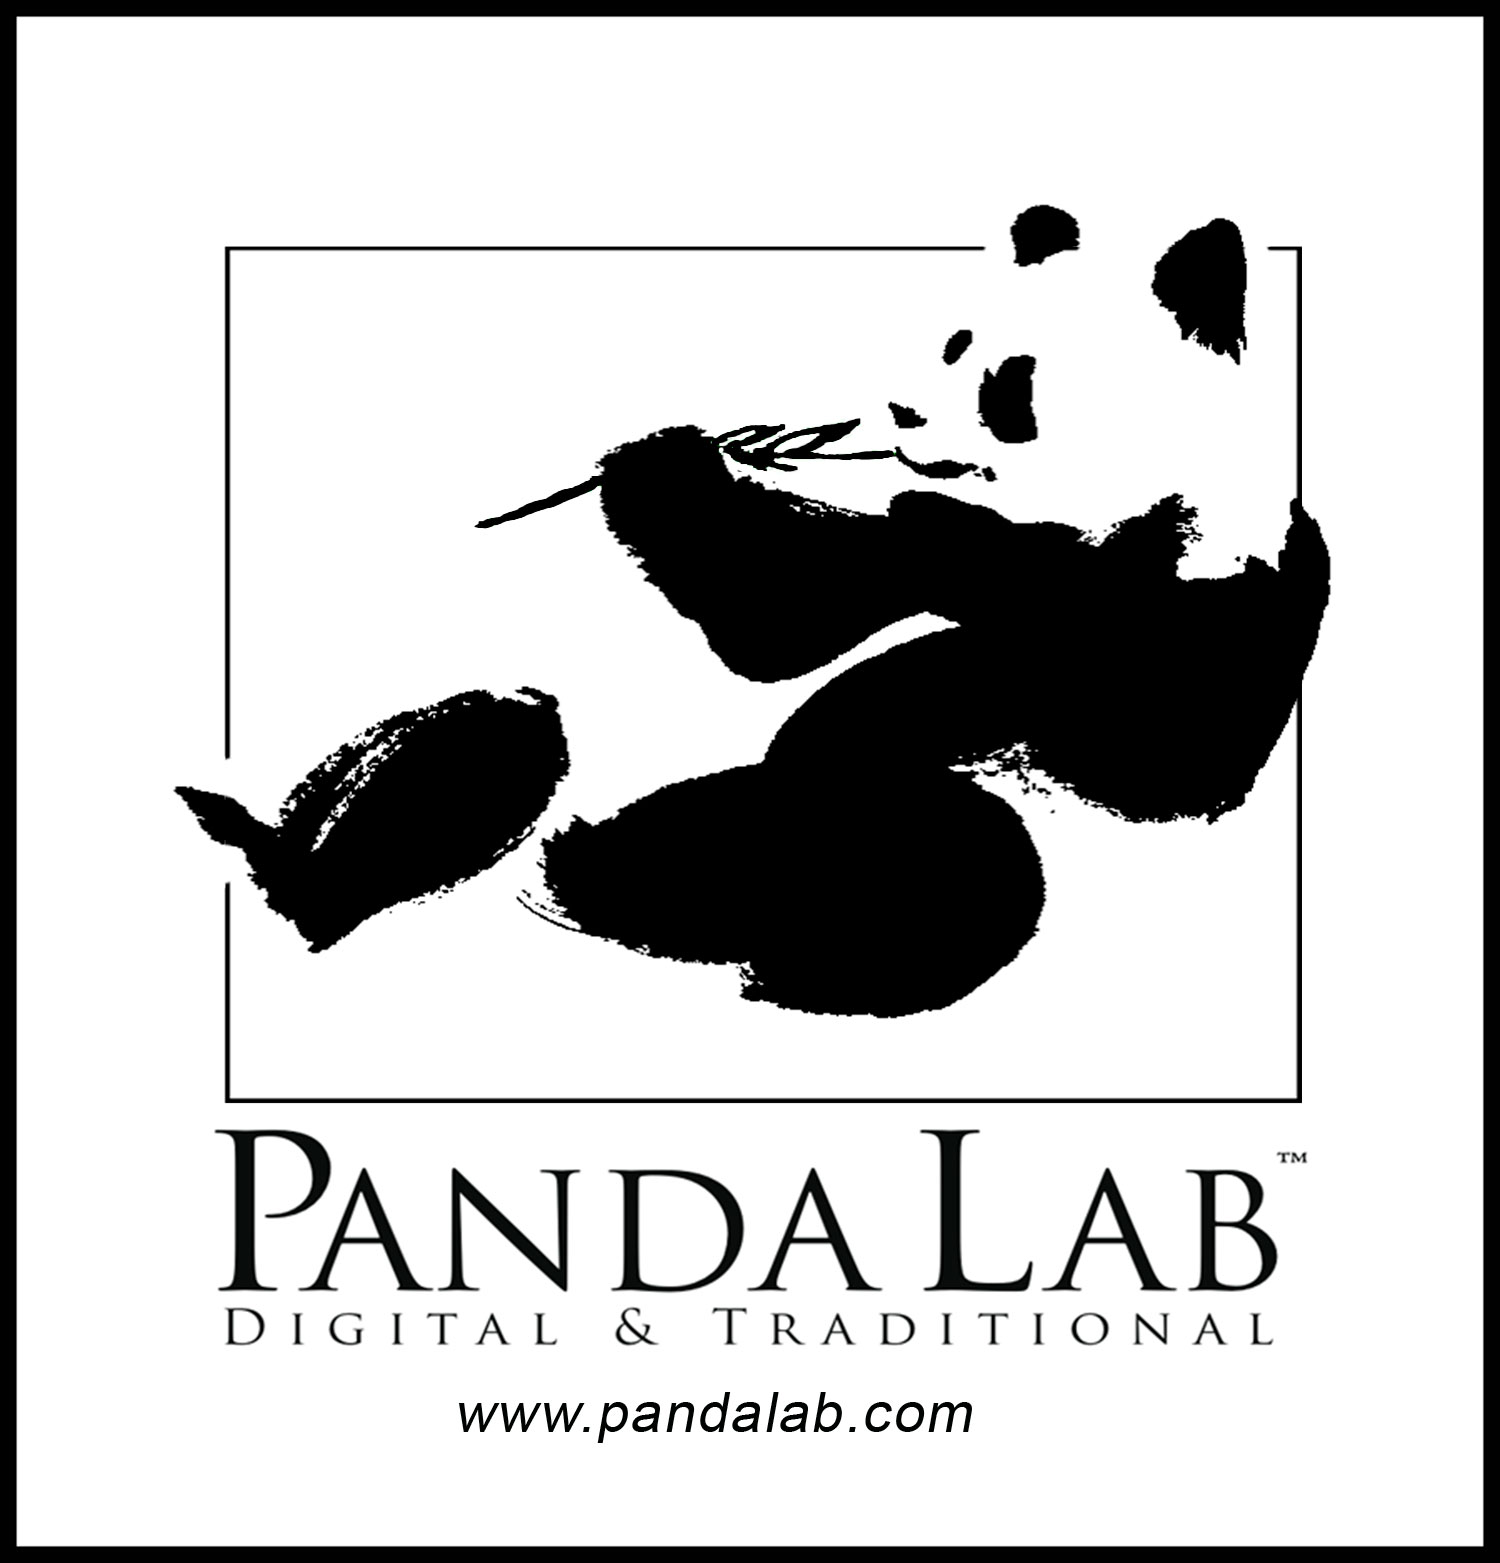 Panda Lab - Panda Lab will be offering expedited developing and scanning, so film shooters will have digital scans by Tuesday, June 11 to submit. 20% of the proceeds from those sales will be donated to PCNW by Panda Lab.Location: 533 Warren Ave NorthSeattle, WA 98109